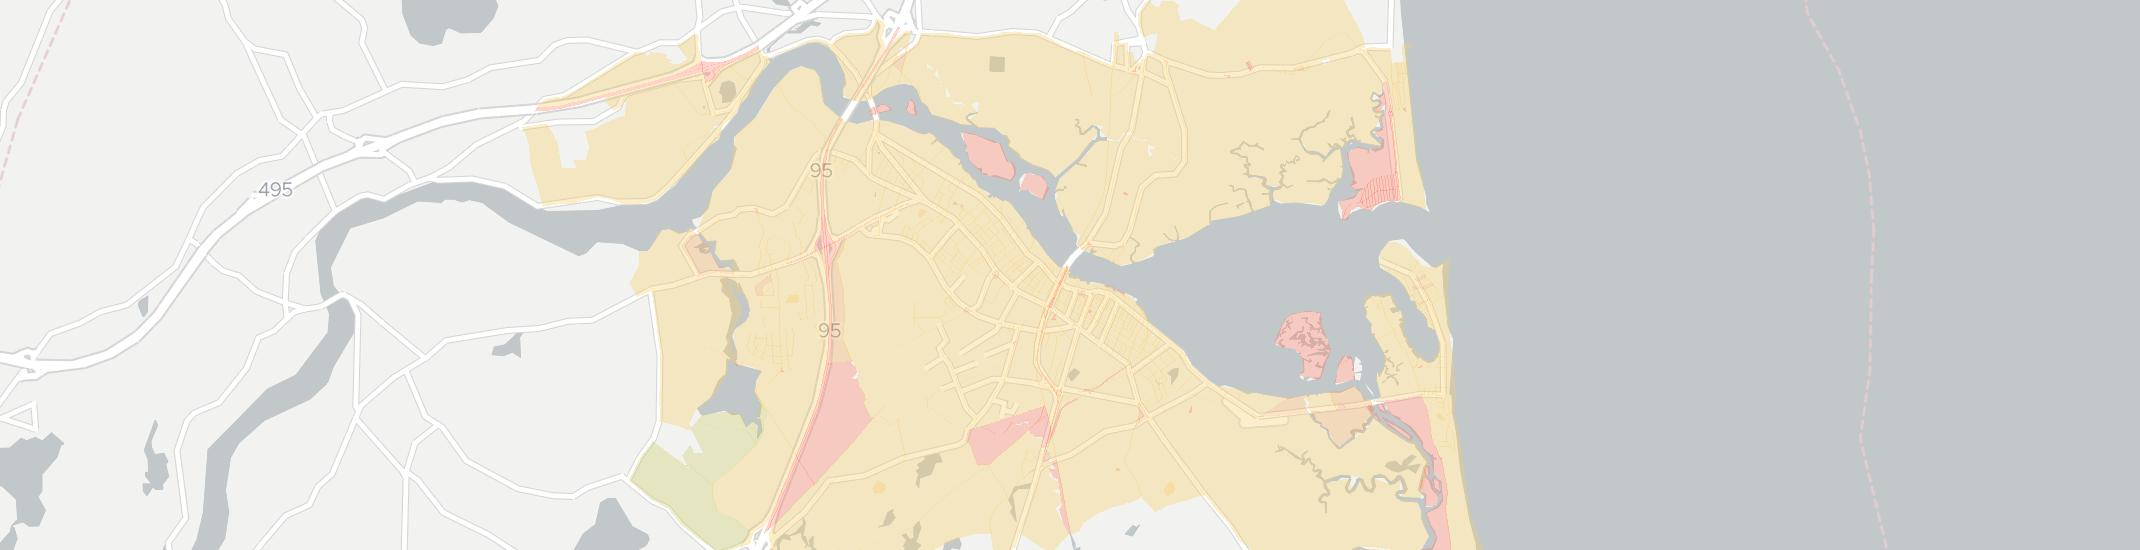 Newburyport Internet Competition Map. Click for interactive map.